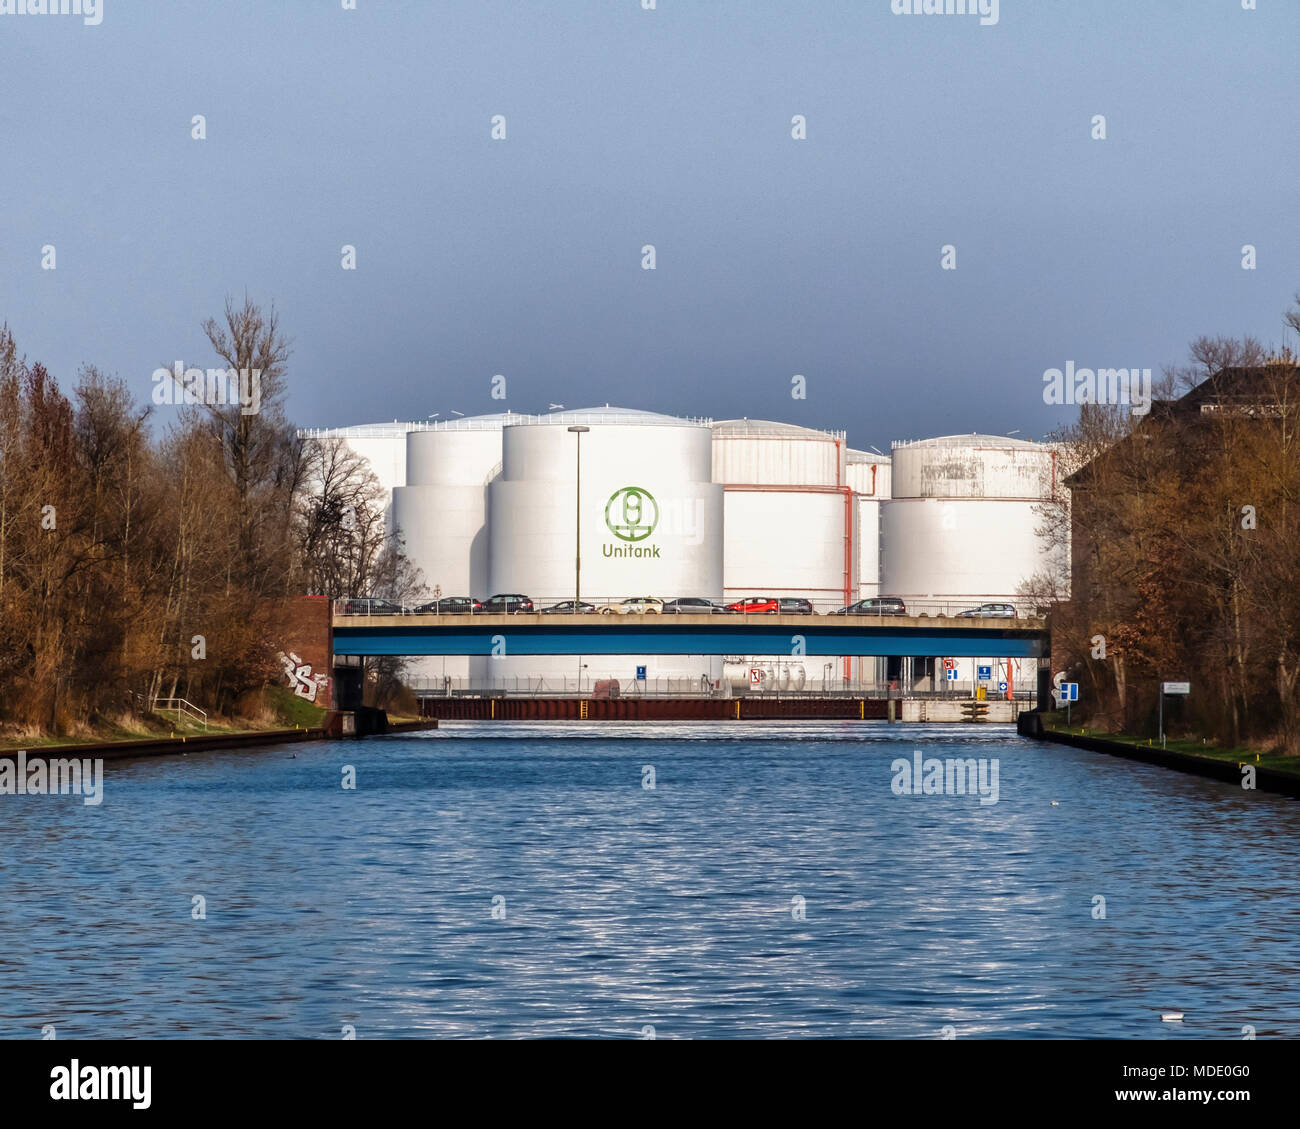 Berlin-Moabit, Charlottenburg-Wilmersdorf. Ludwig-Hoffman Bridge Girder road bridge crossing the Westhafen canal and Unitank oil tanks Stock Photo